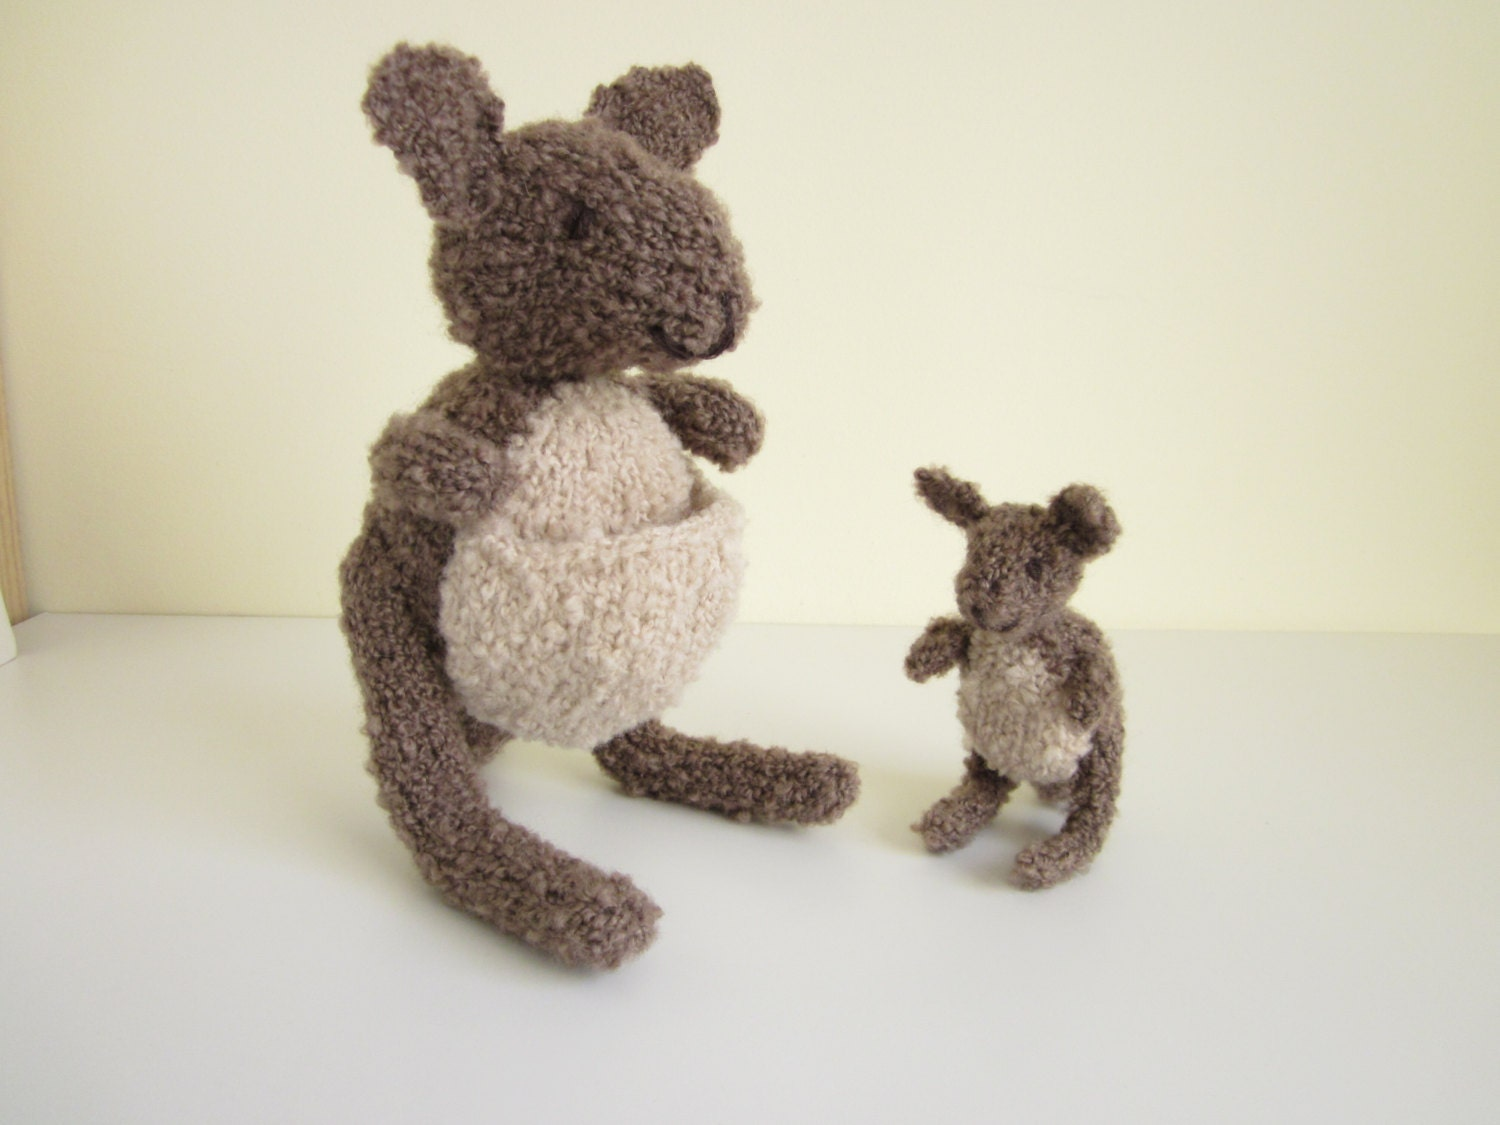 Kangaroo Pouch Knitting Pattern : Cute kangaroo toys knitting pattern